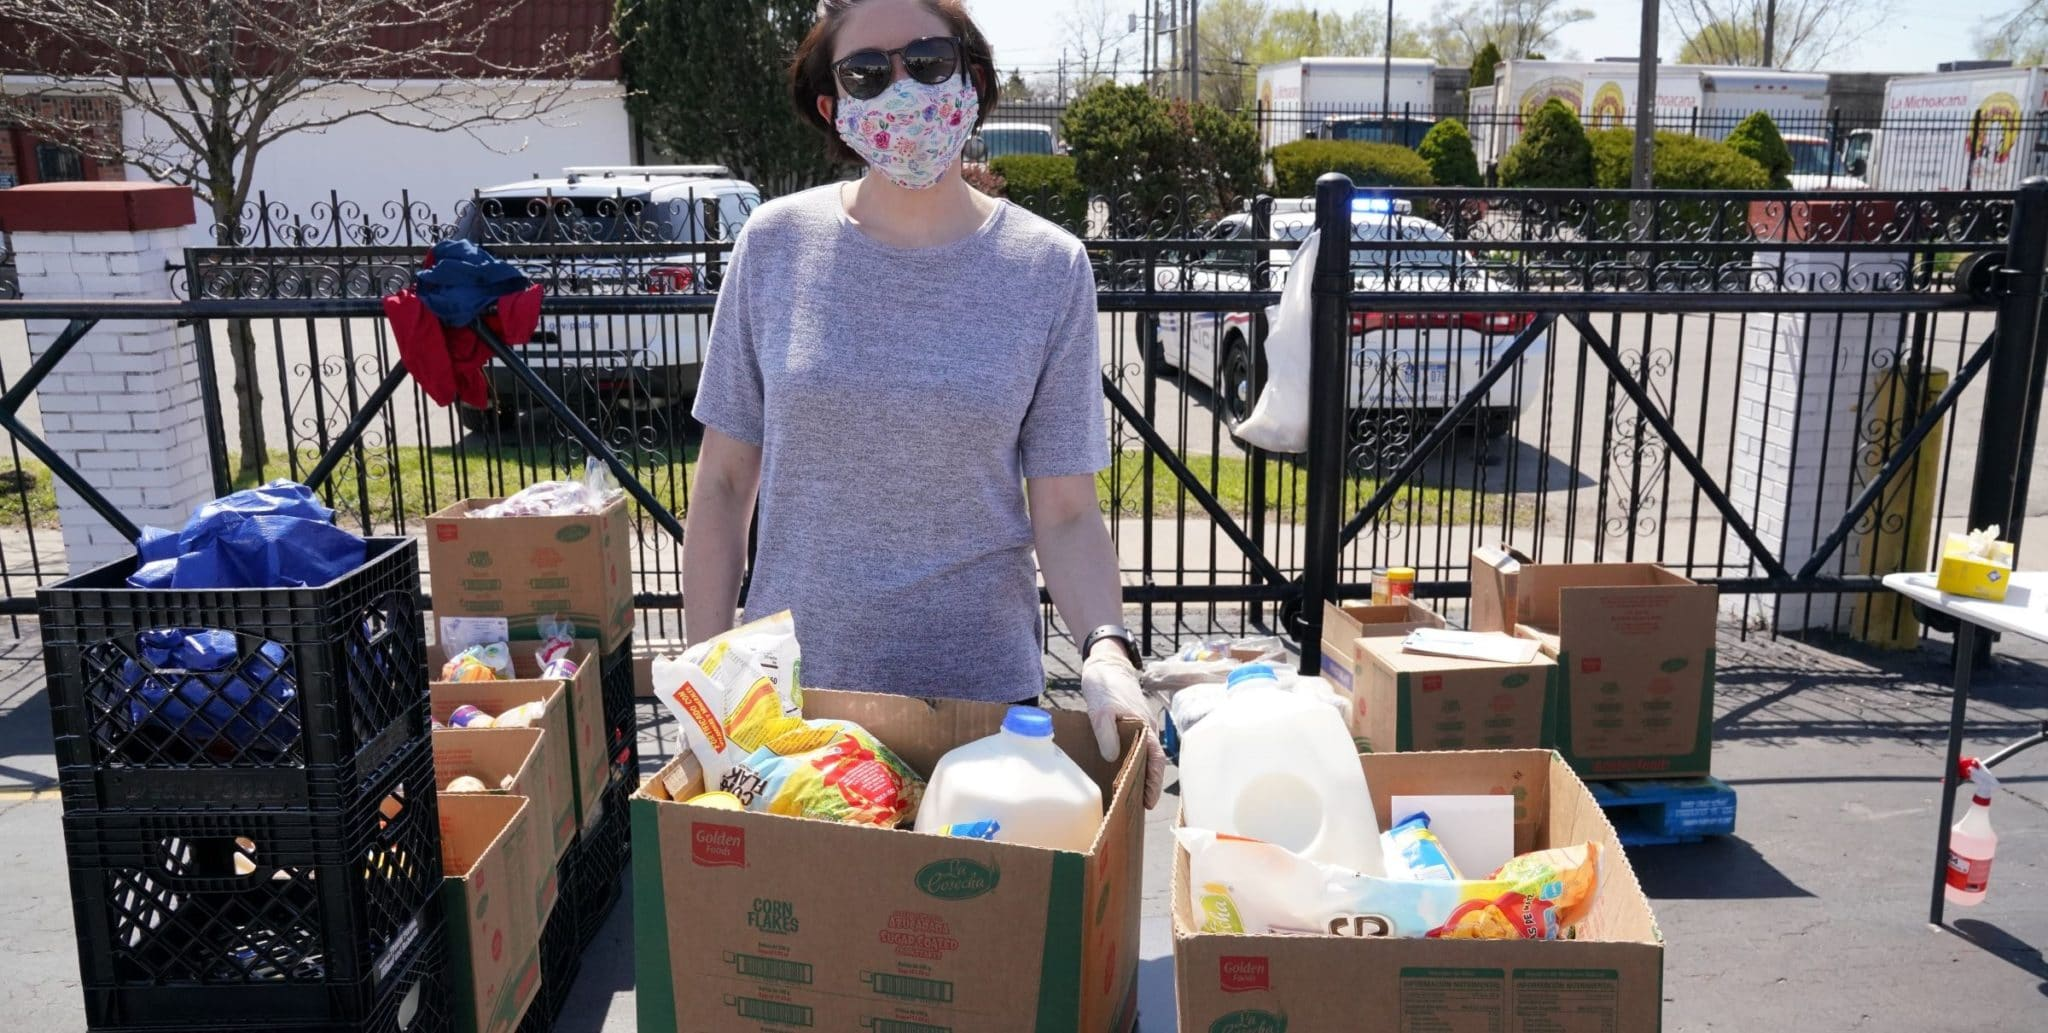 Gleaners staff packs boxes of emergency groceries at a food distribution in Detroit, Michigan.